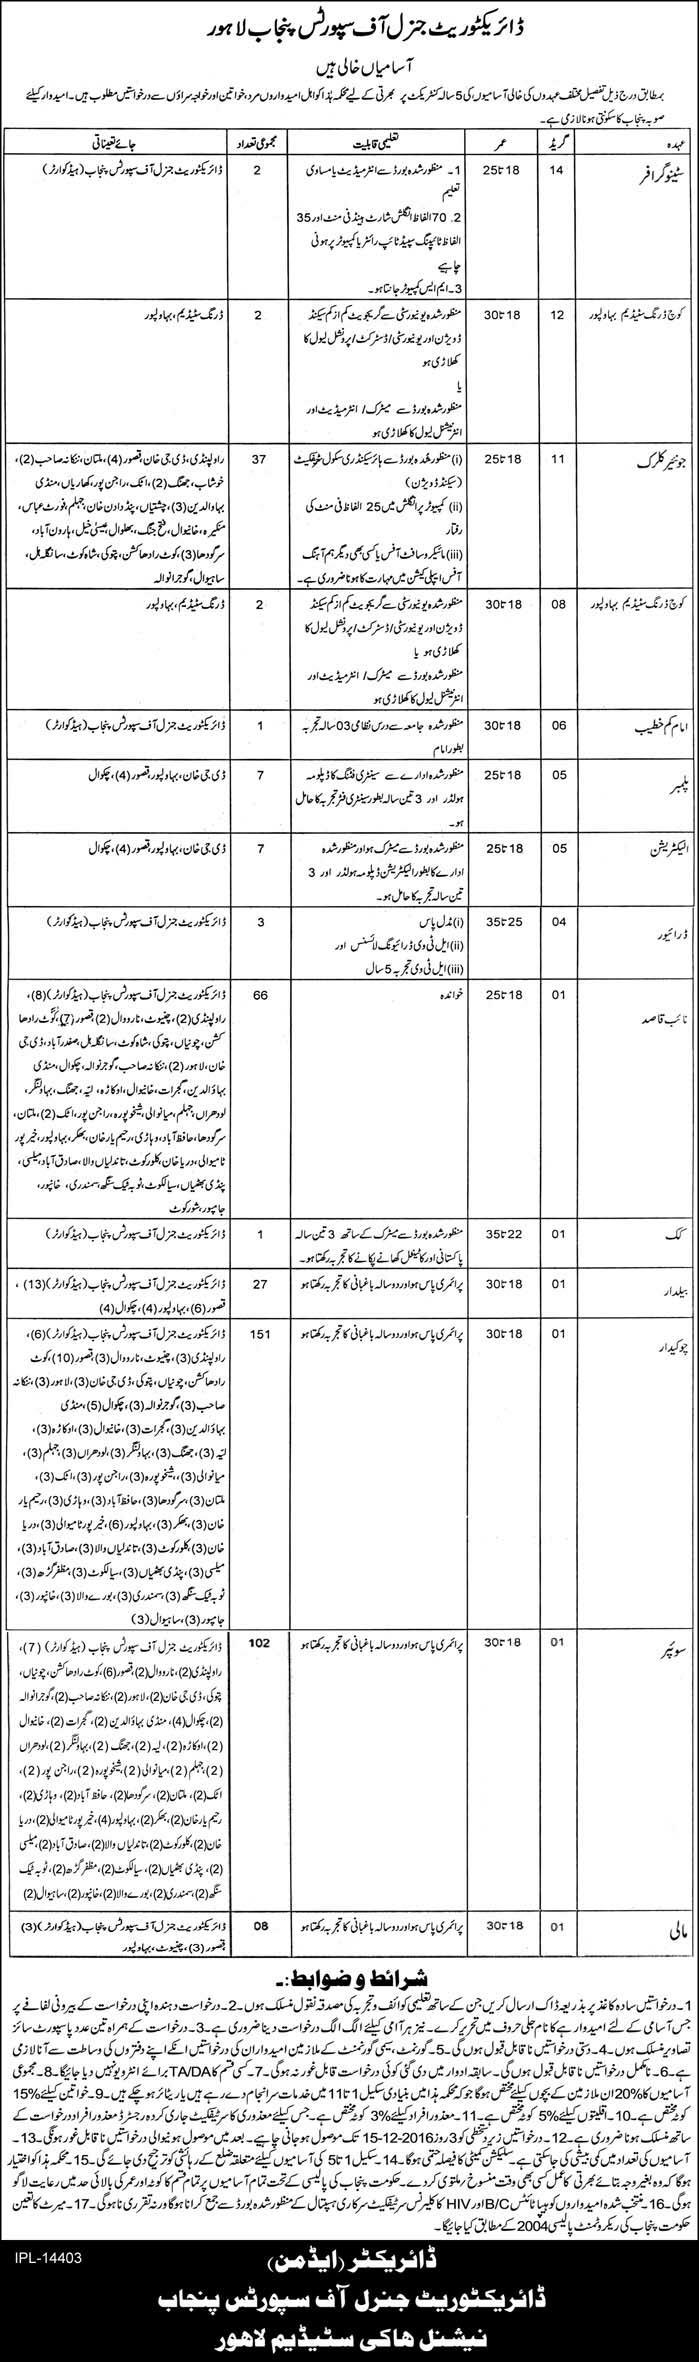 Punjab Sports Board Lahore Jobs 2016 Eligibility Last Date